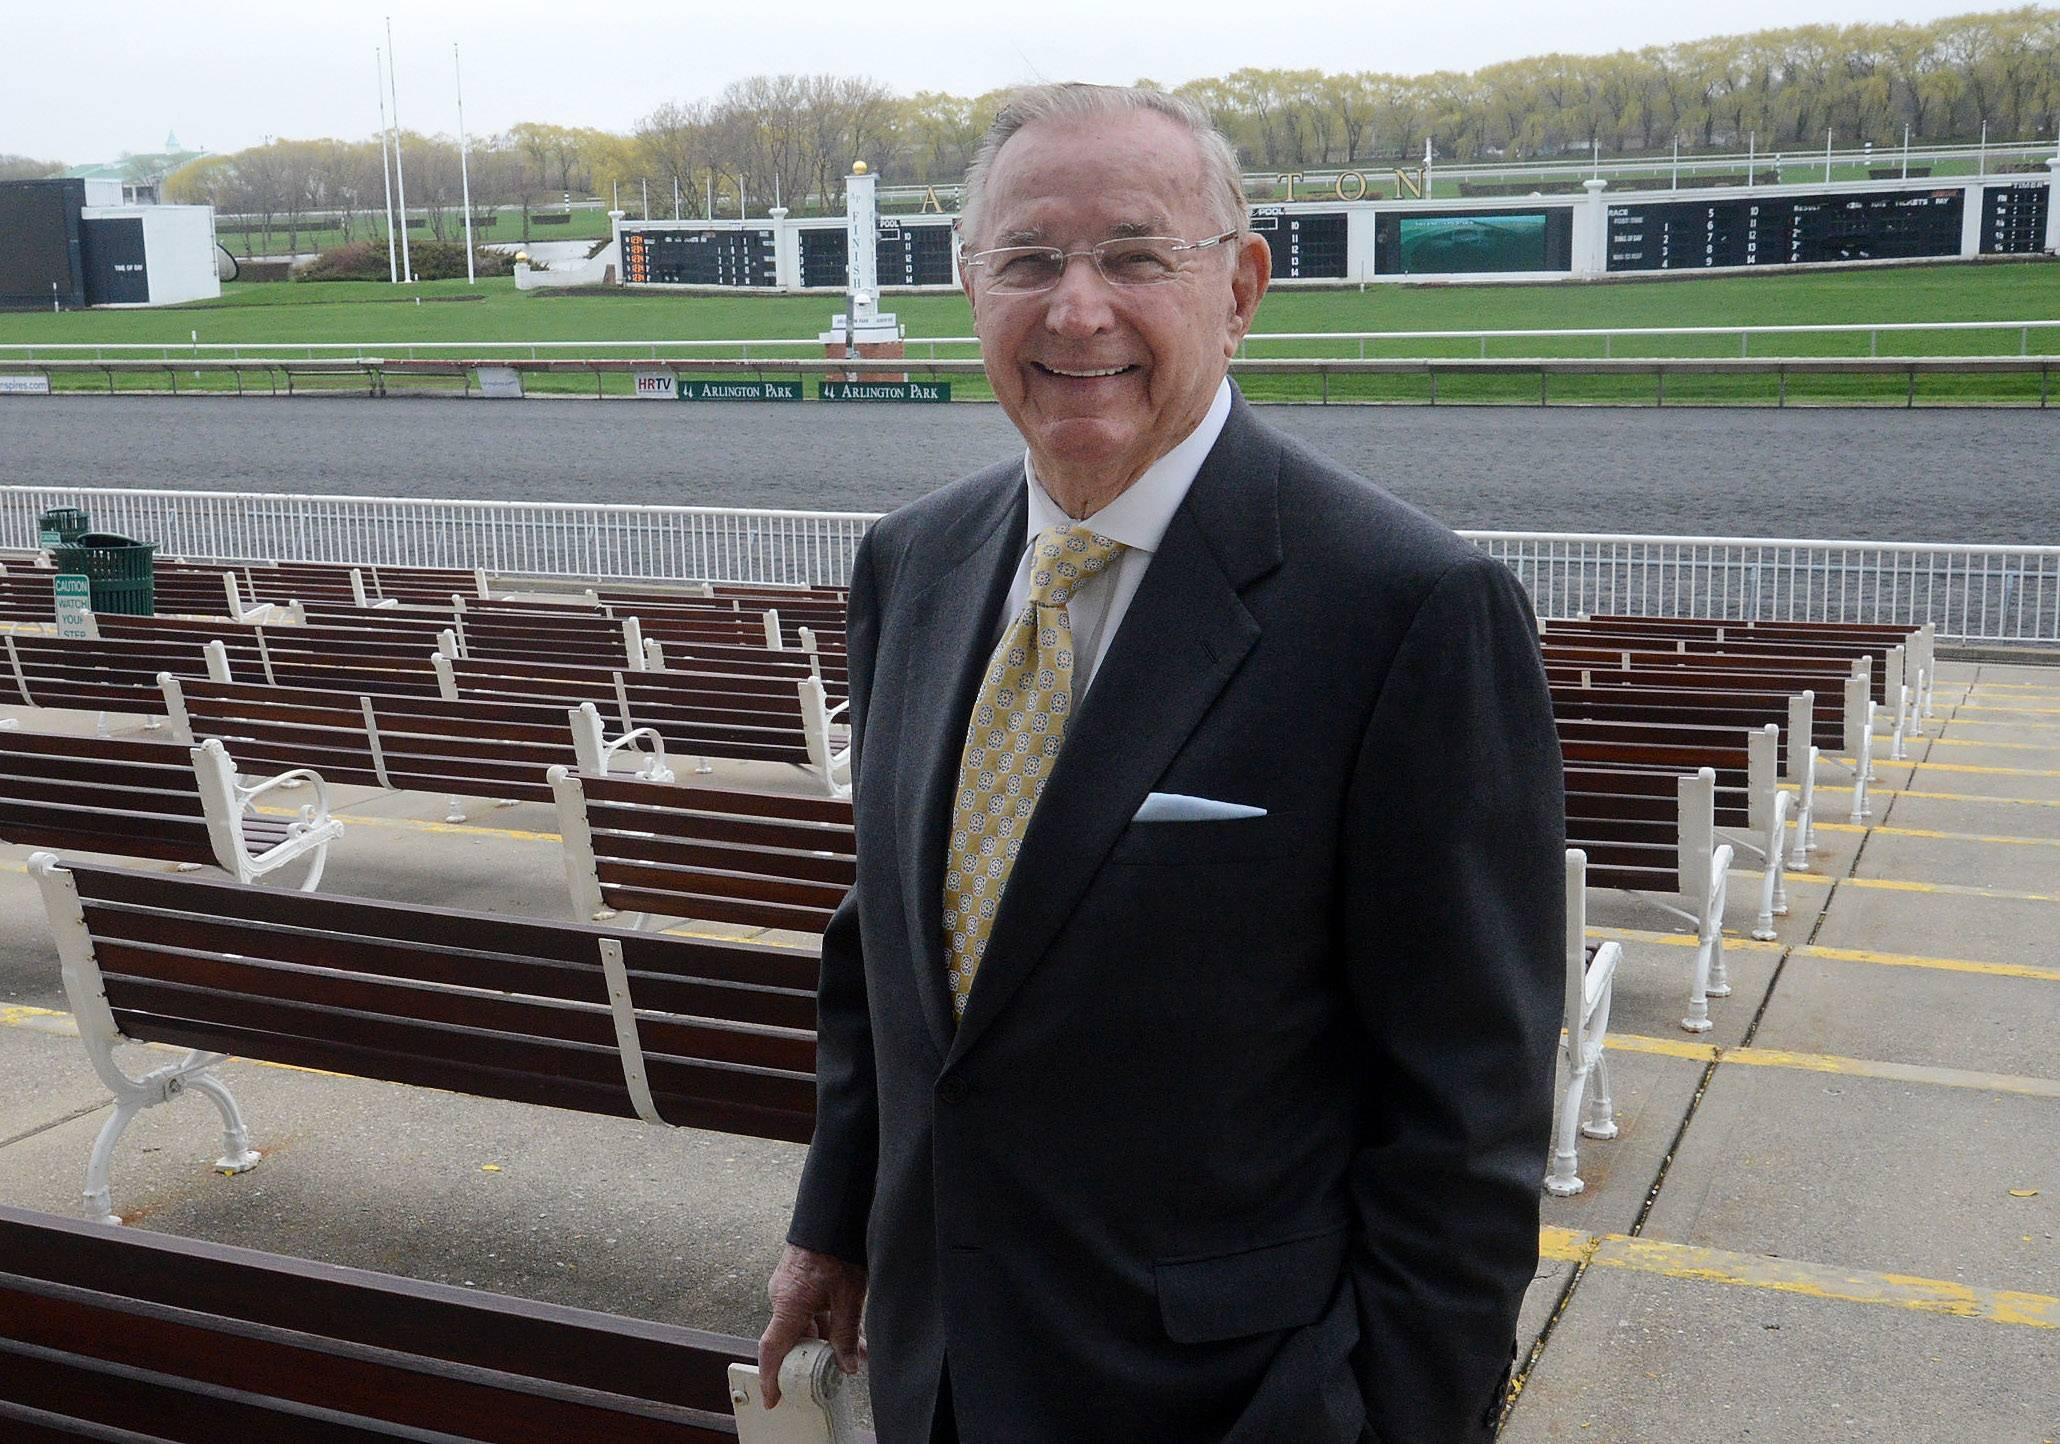 Arlington International Racecourse Chairman Richard Duchossois talks about the upcoming season and the 25th anniversary of the track's reopening after the fire.